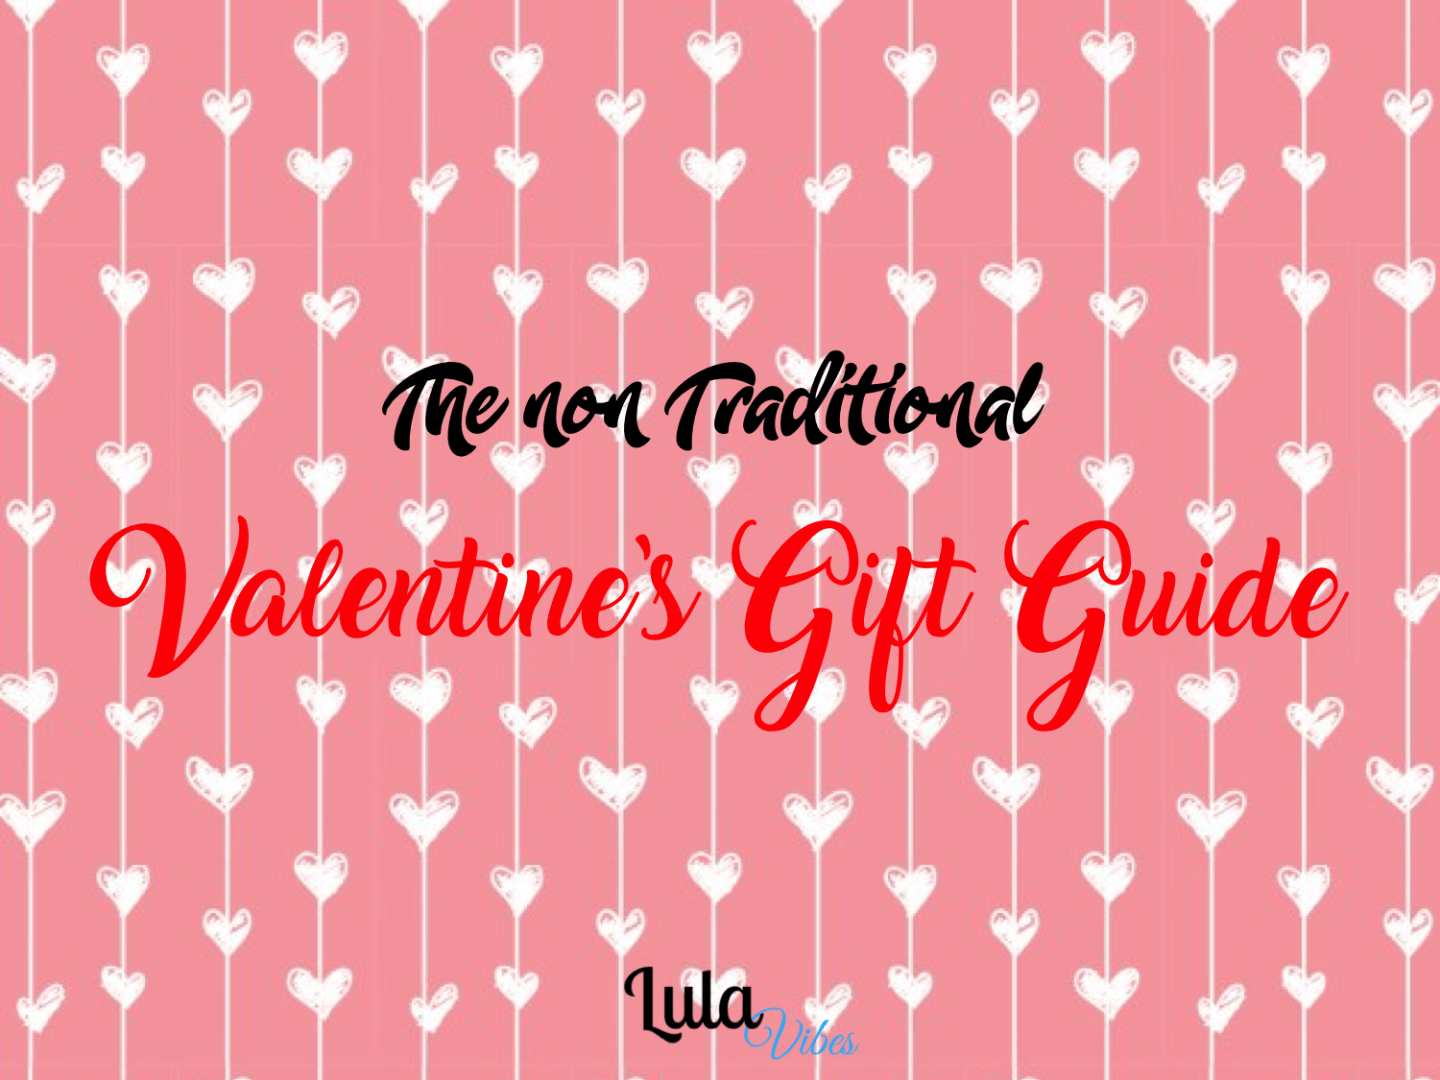 The Non Traditional Valentines Gift Guide